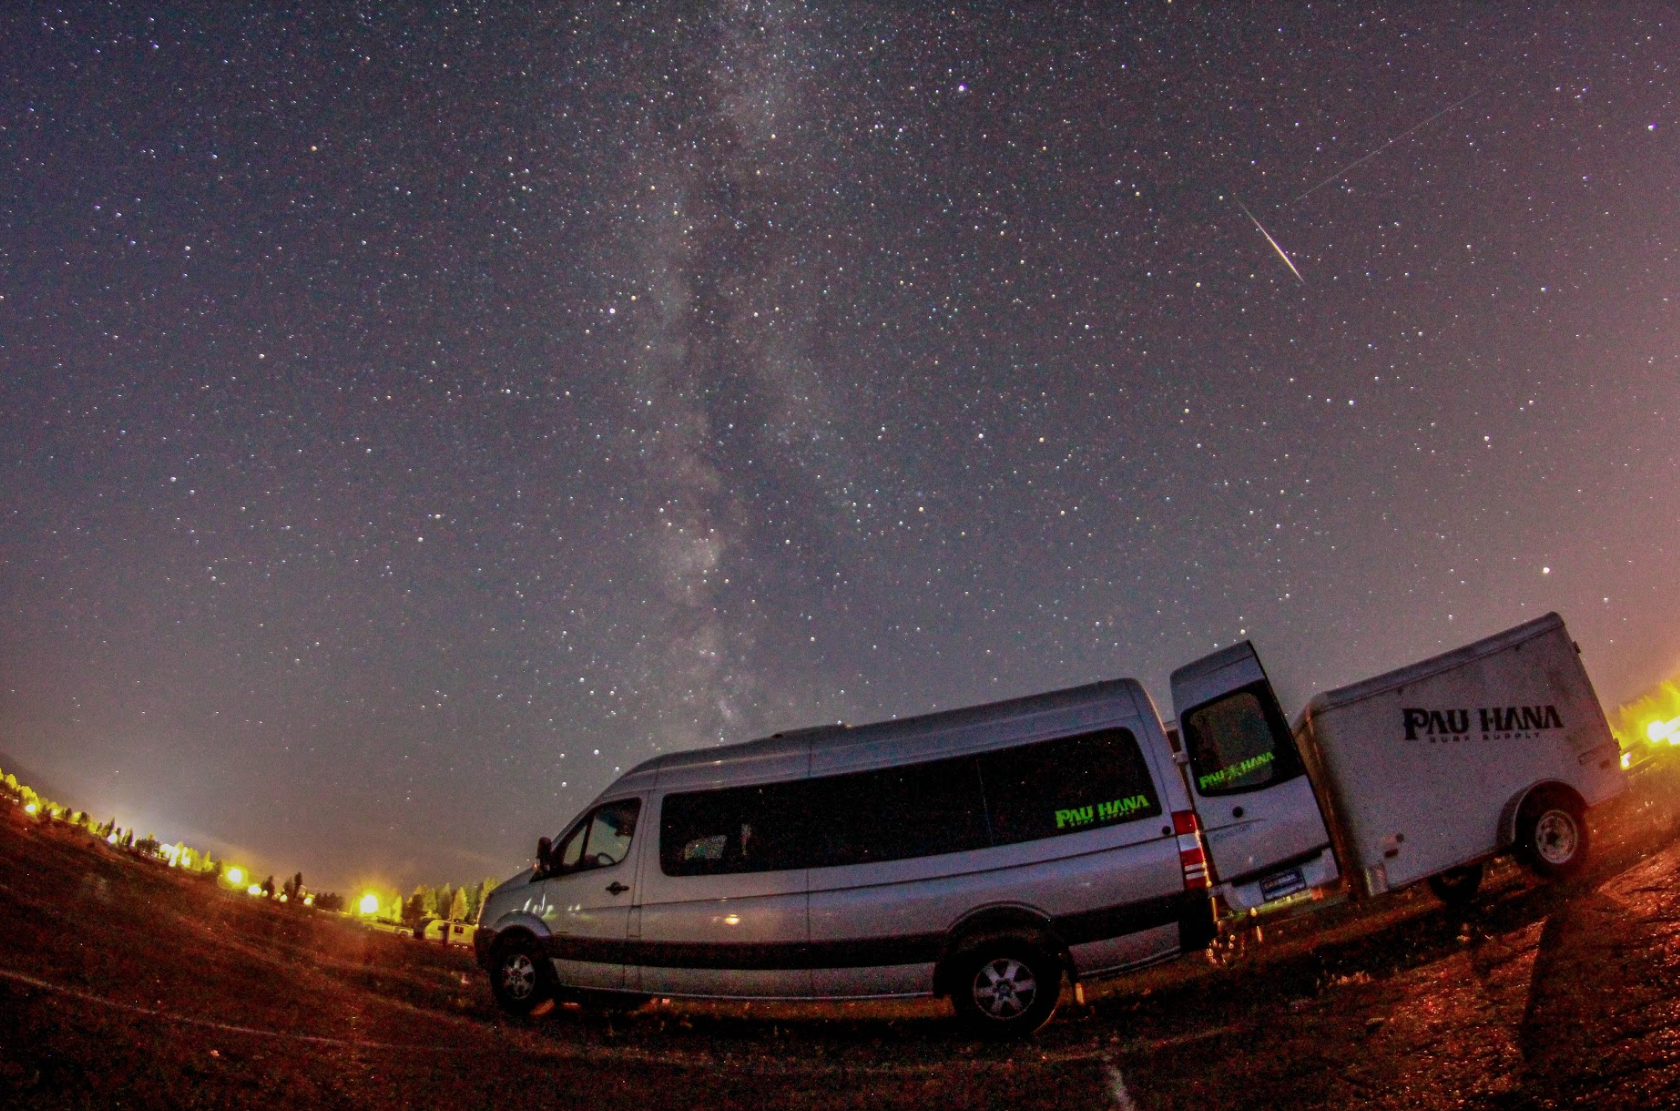 Pau hana sprinter van under the stars in Colorado